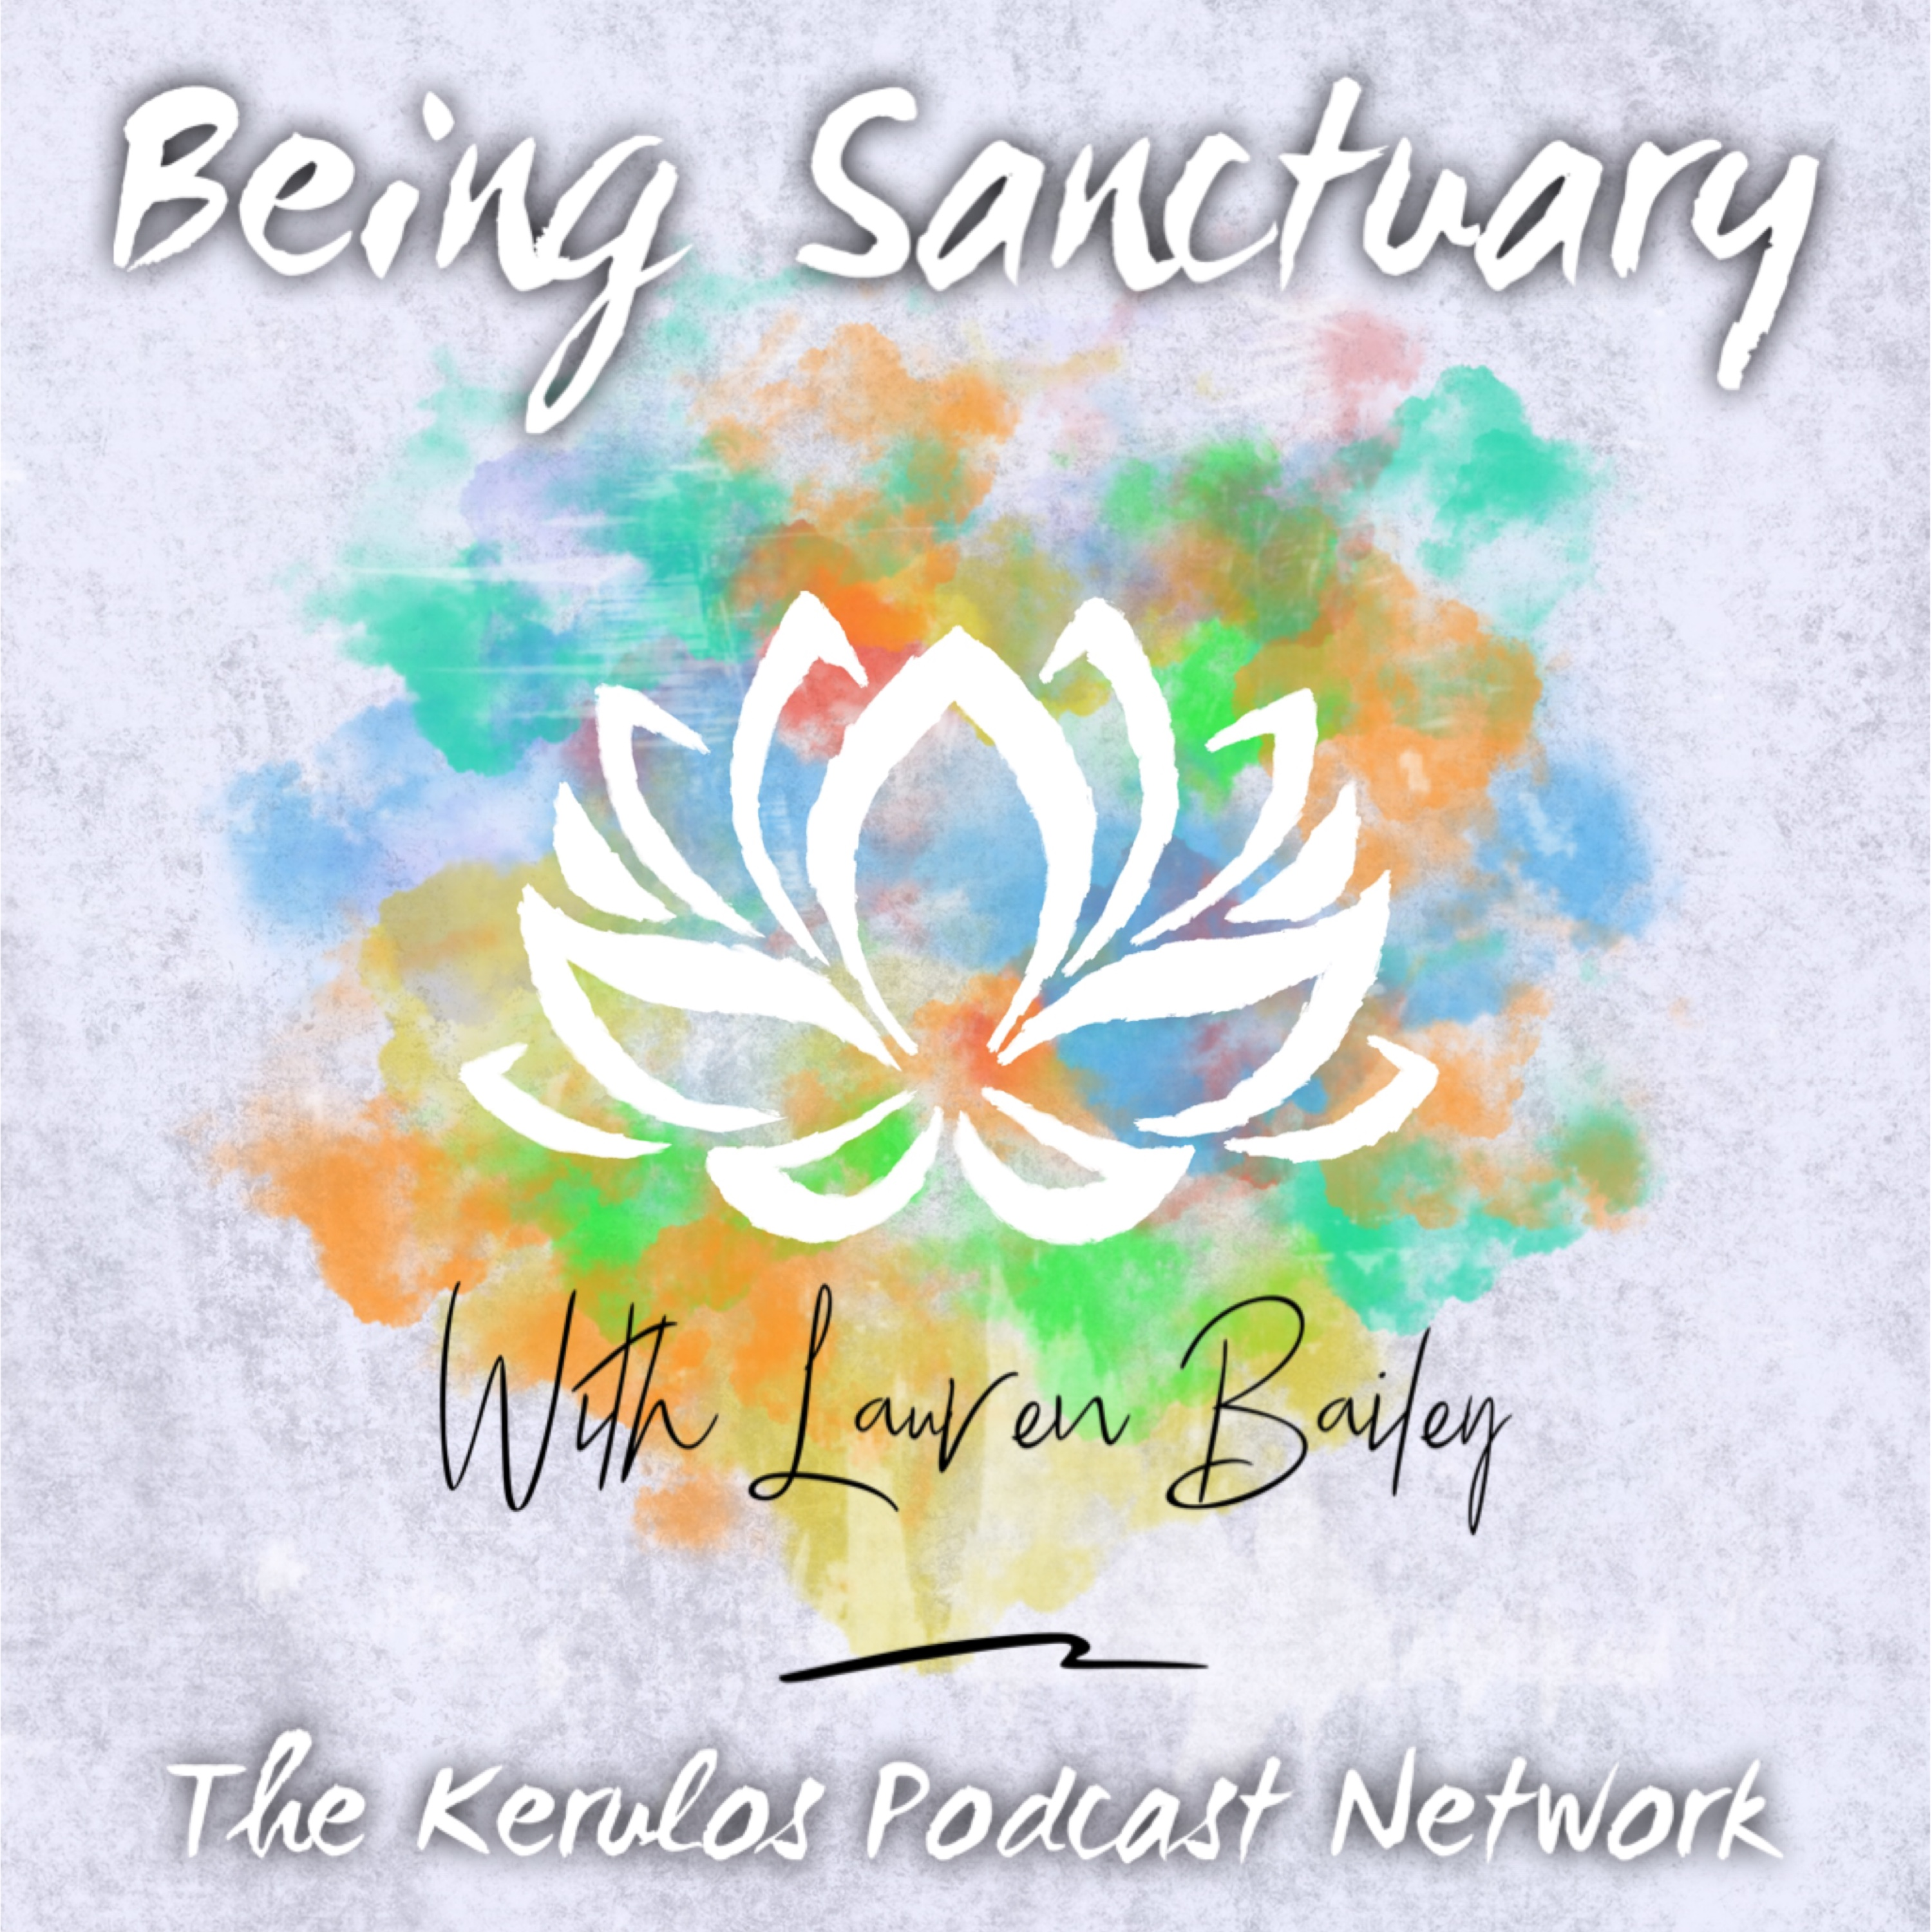 Being Sanctuary